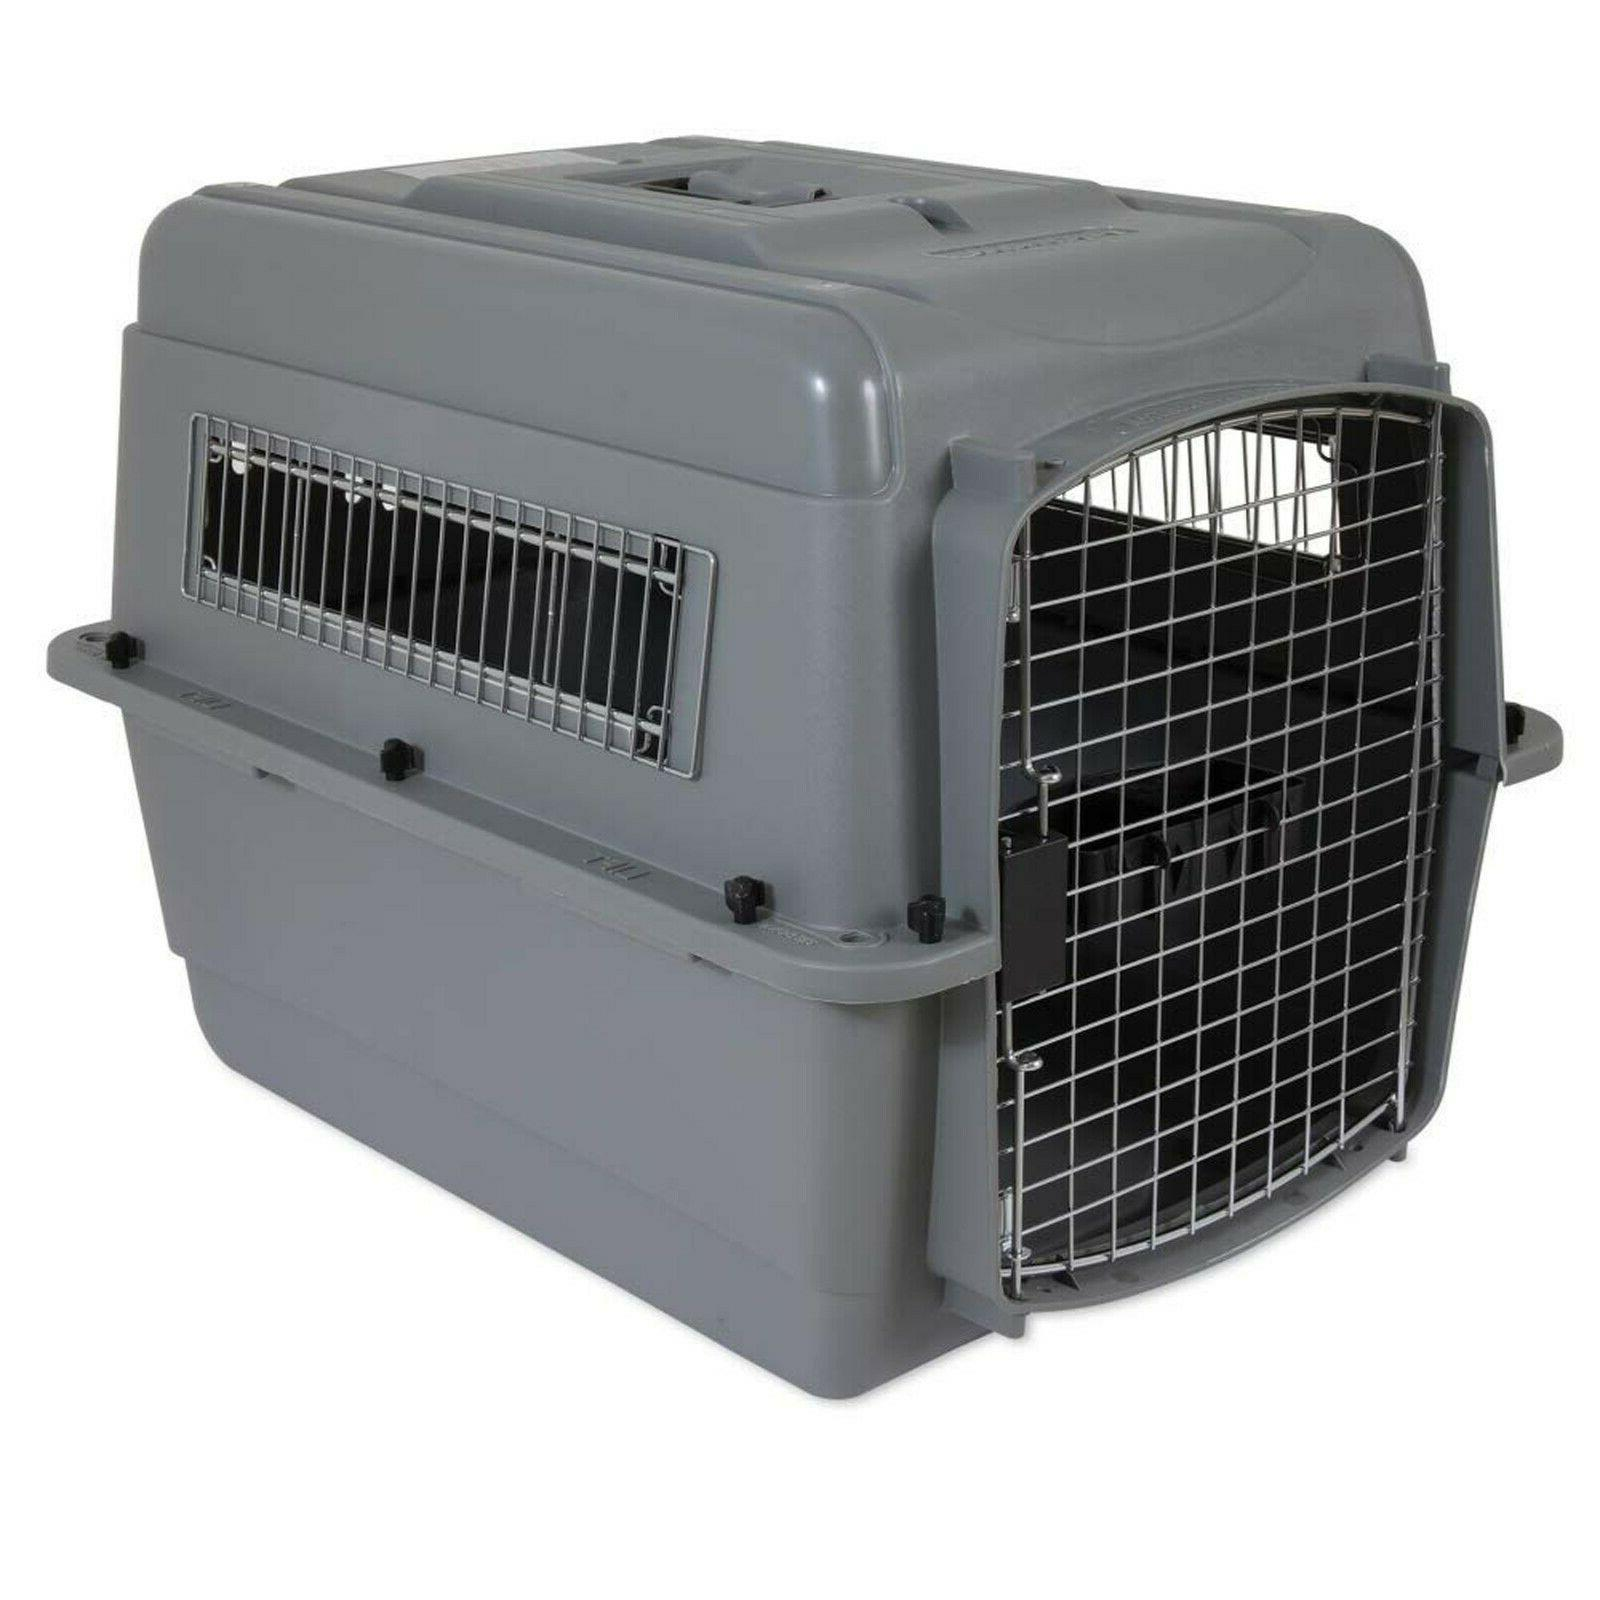 sky kennel portable dog crate plastic travel